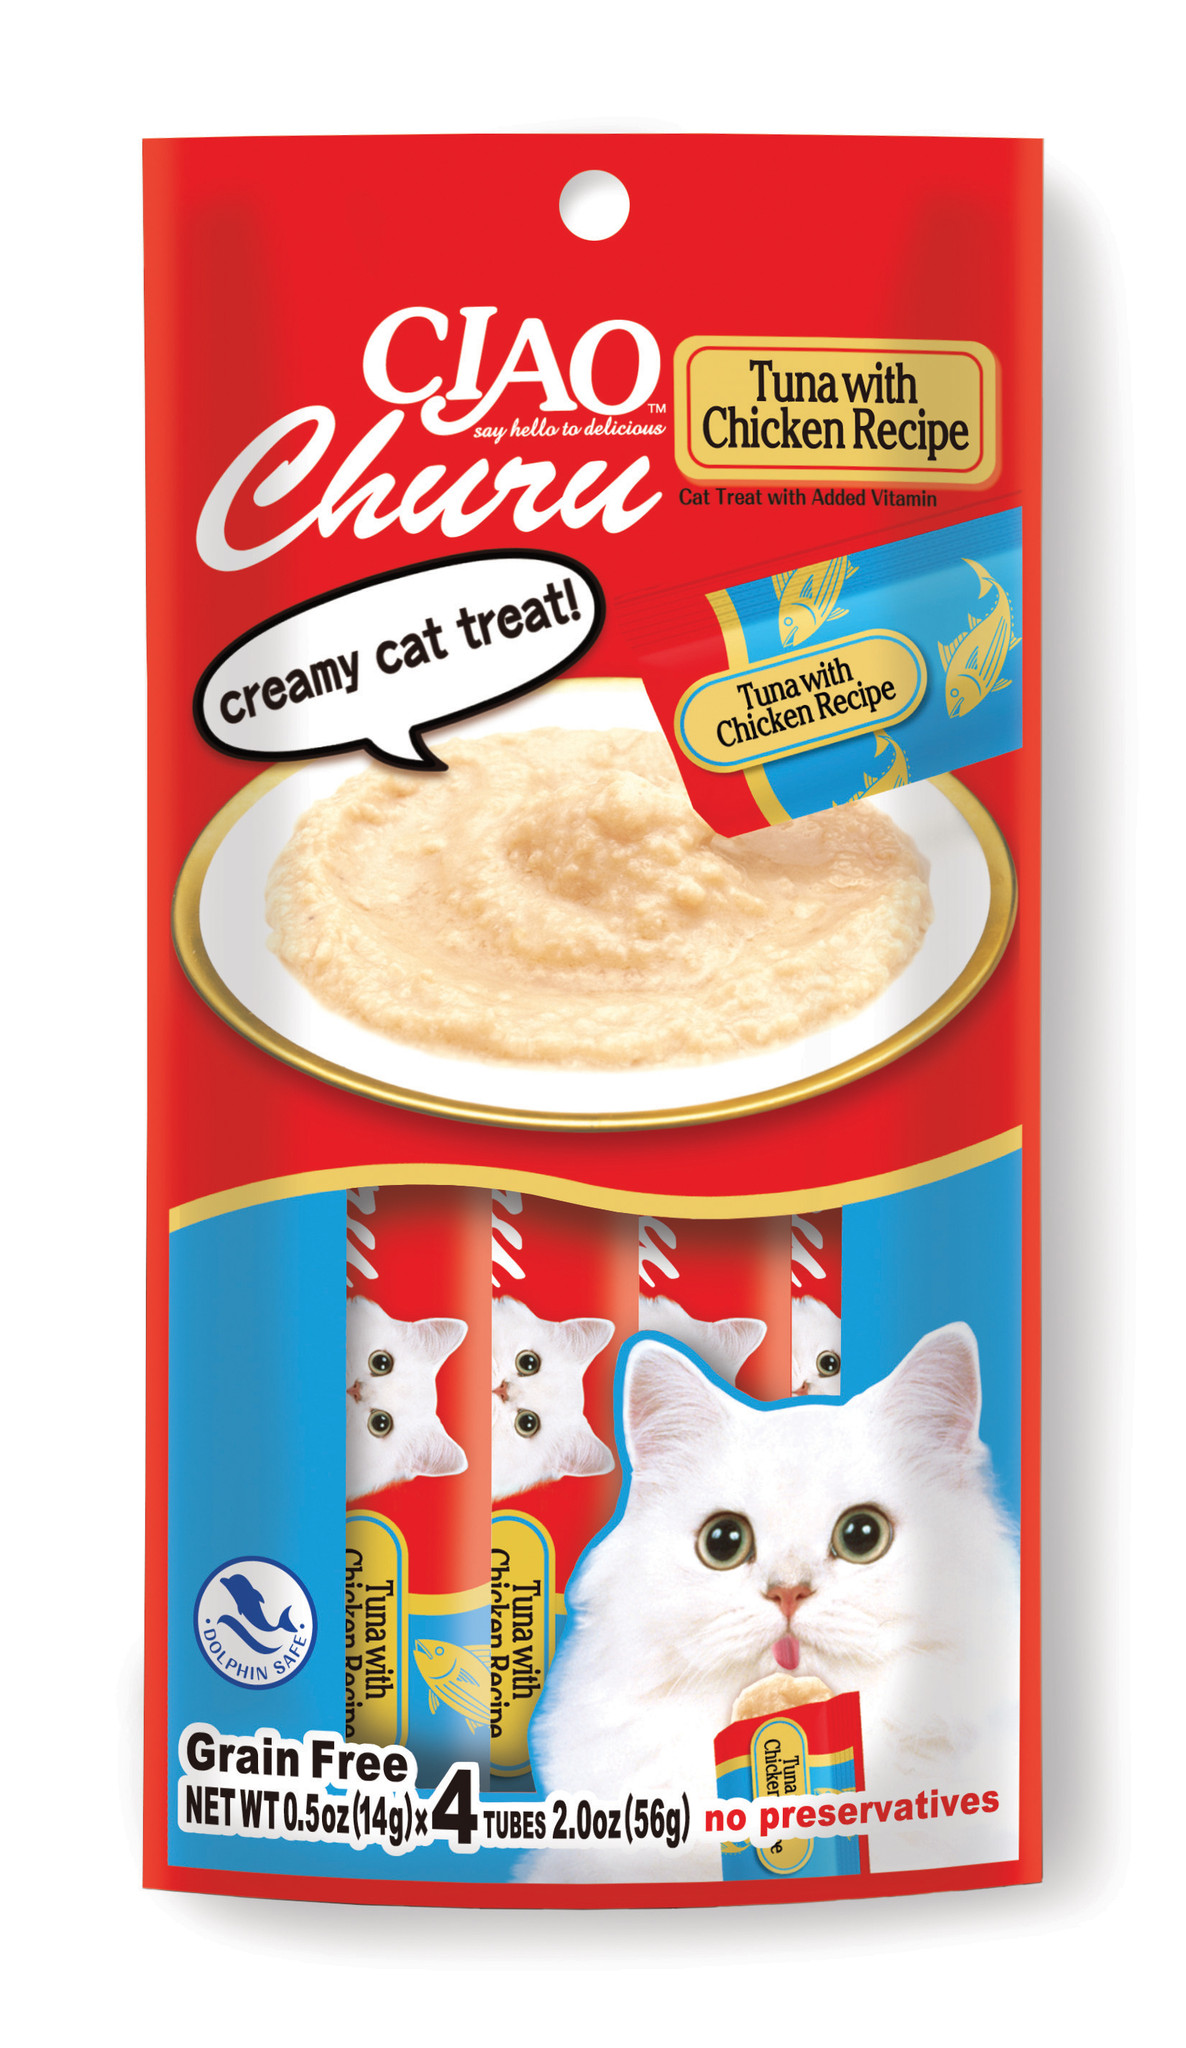 Ciao Churu Creamy Purée Cat Treats Four 0.5 oz. Tubes Tuna with Chicken Recipe by